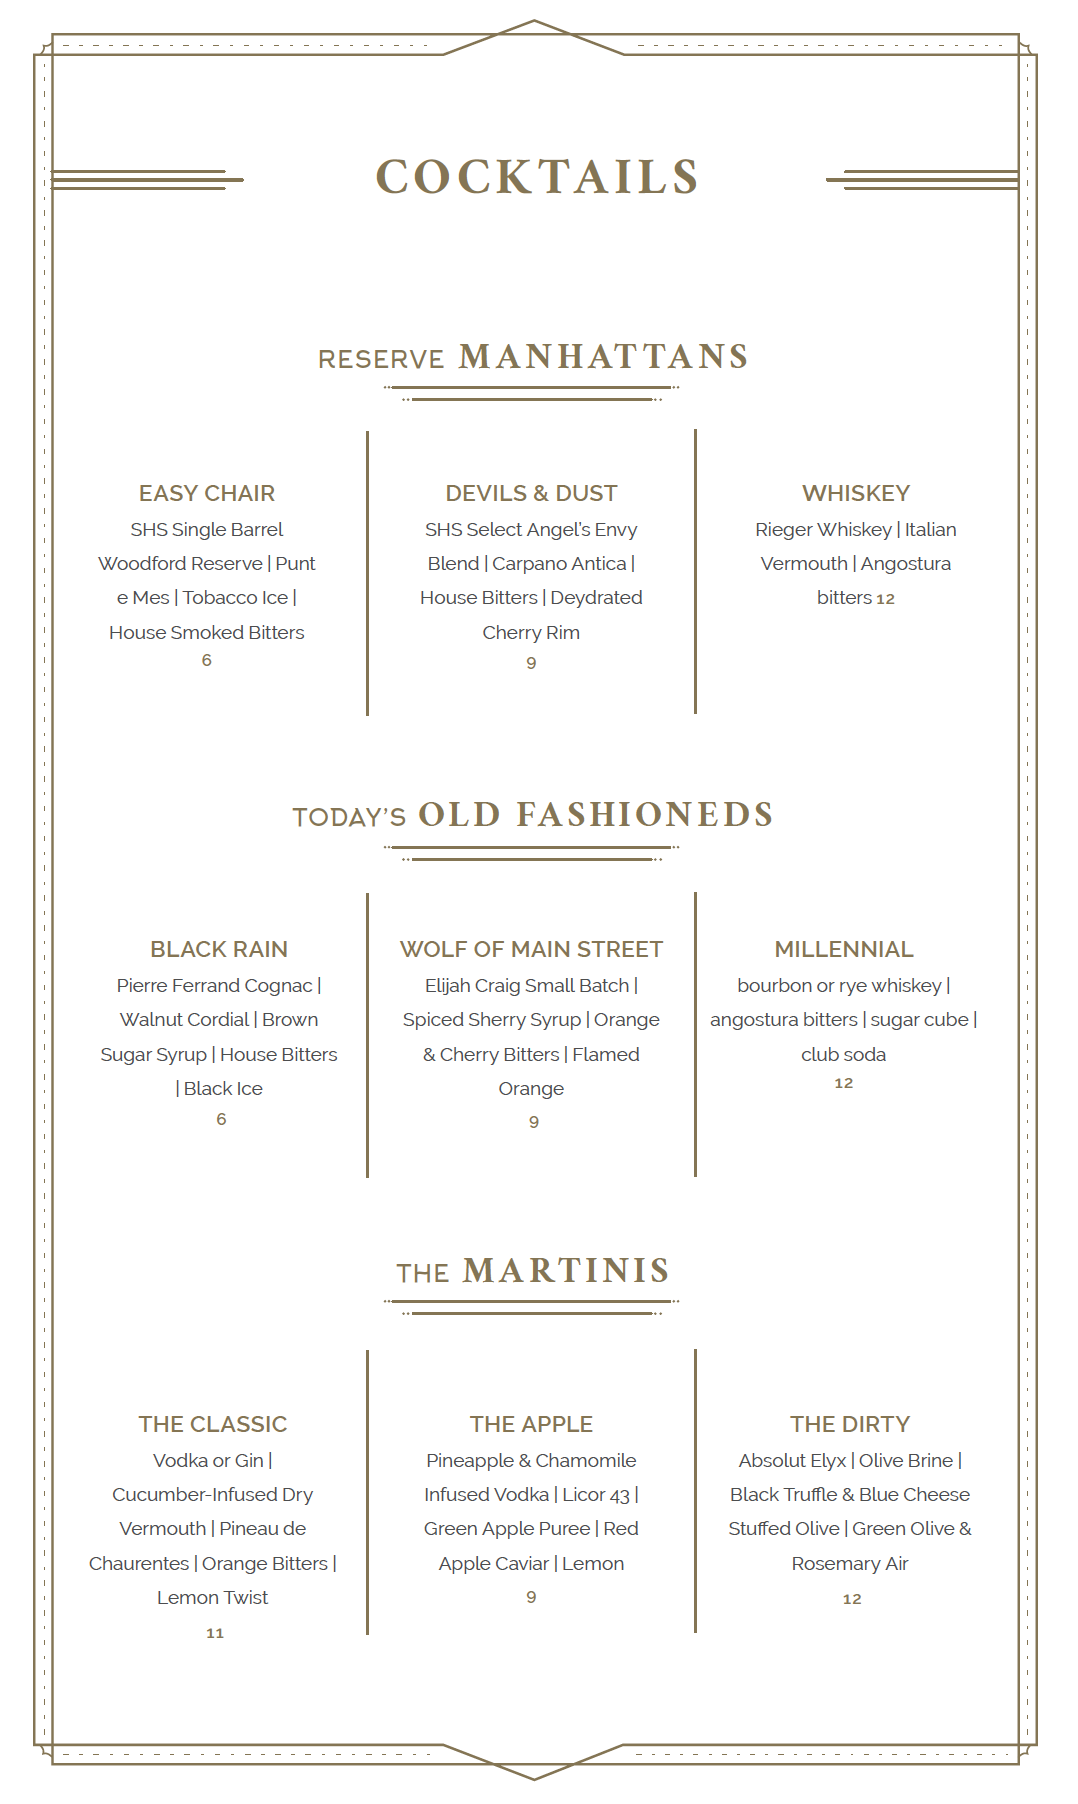 SH Libations Menu Designs